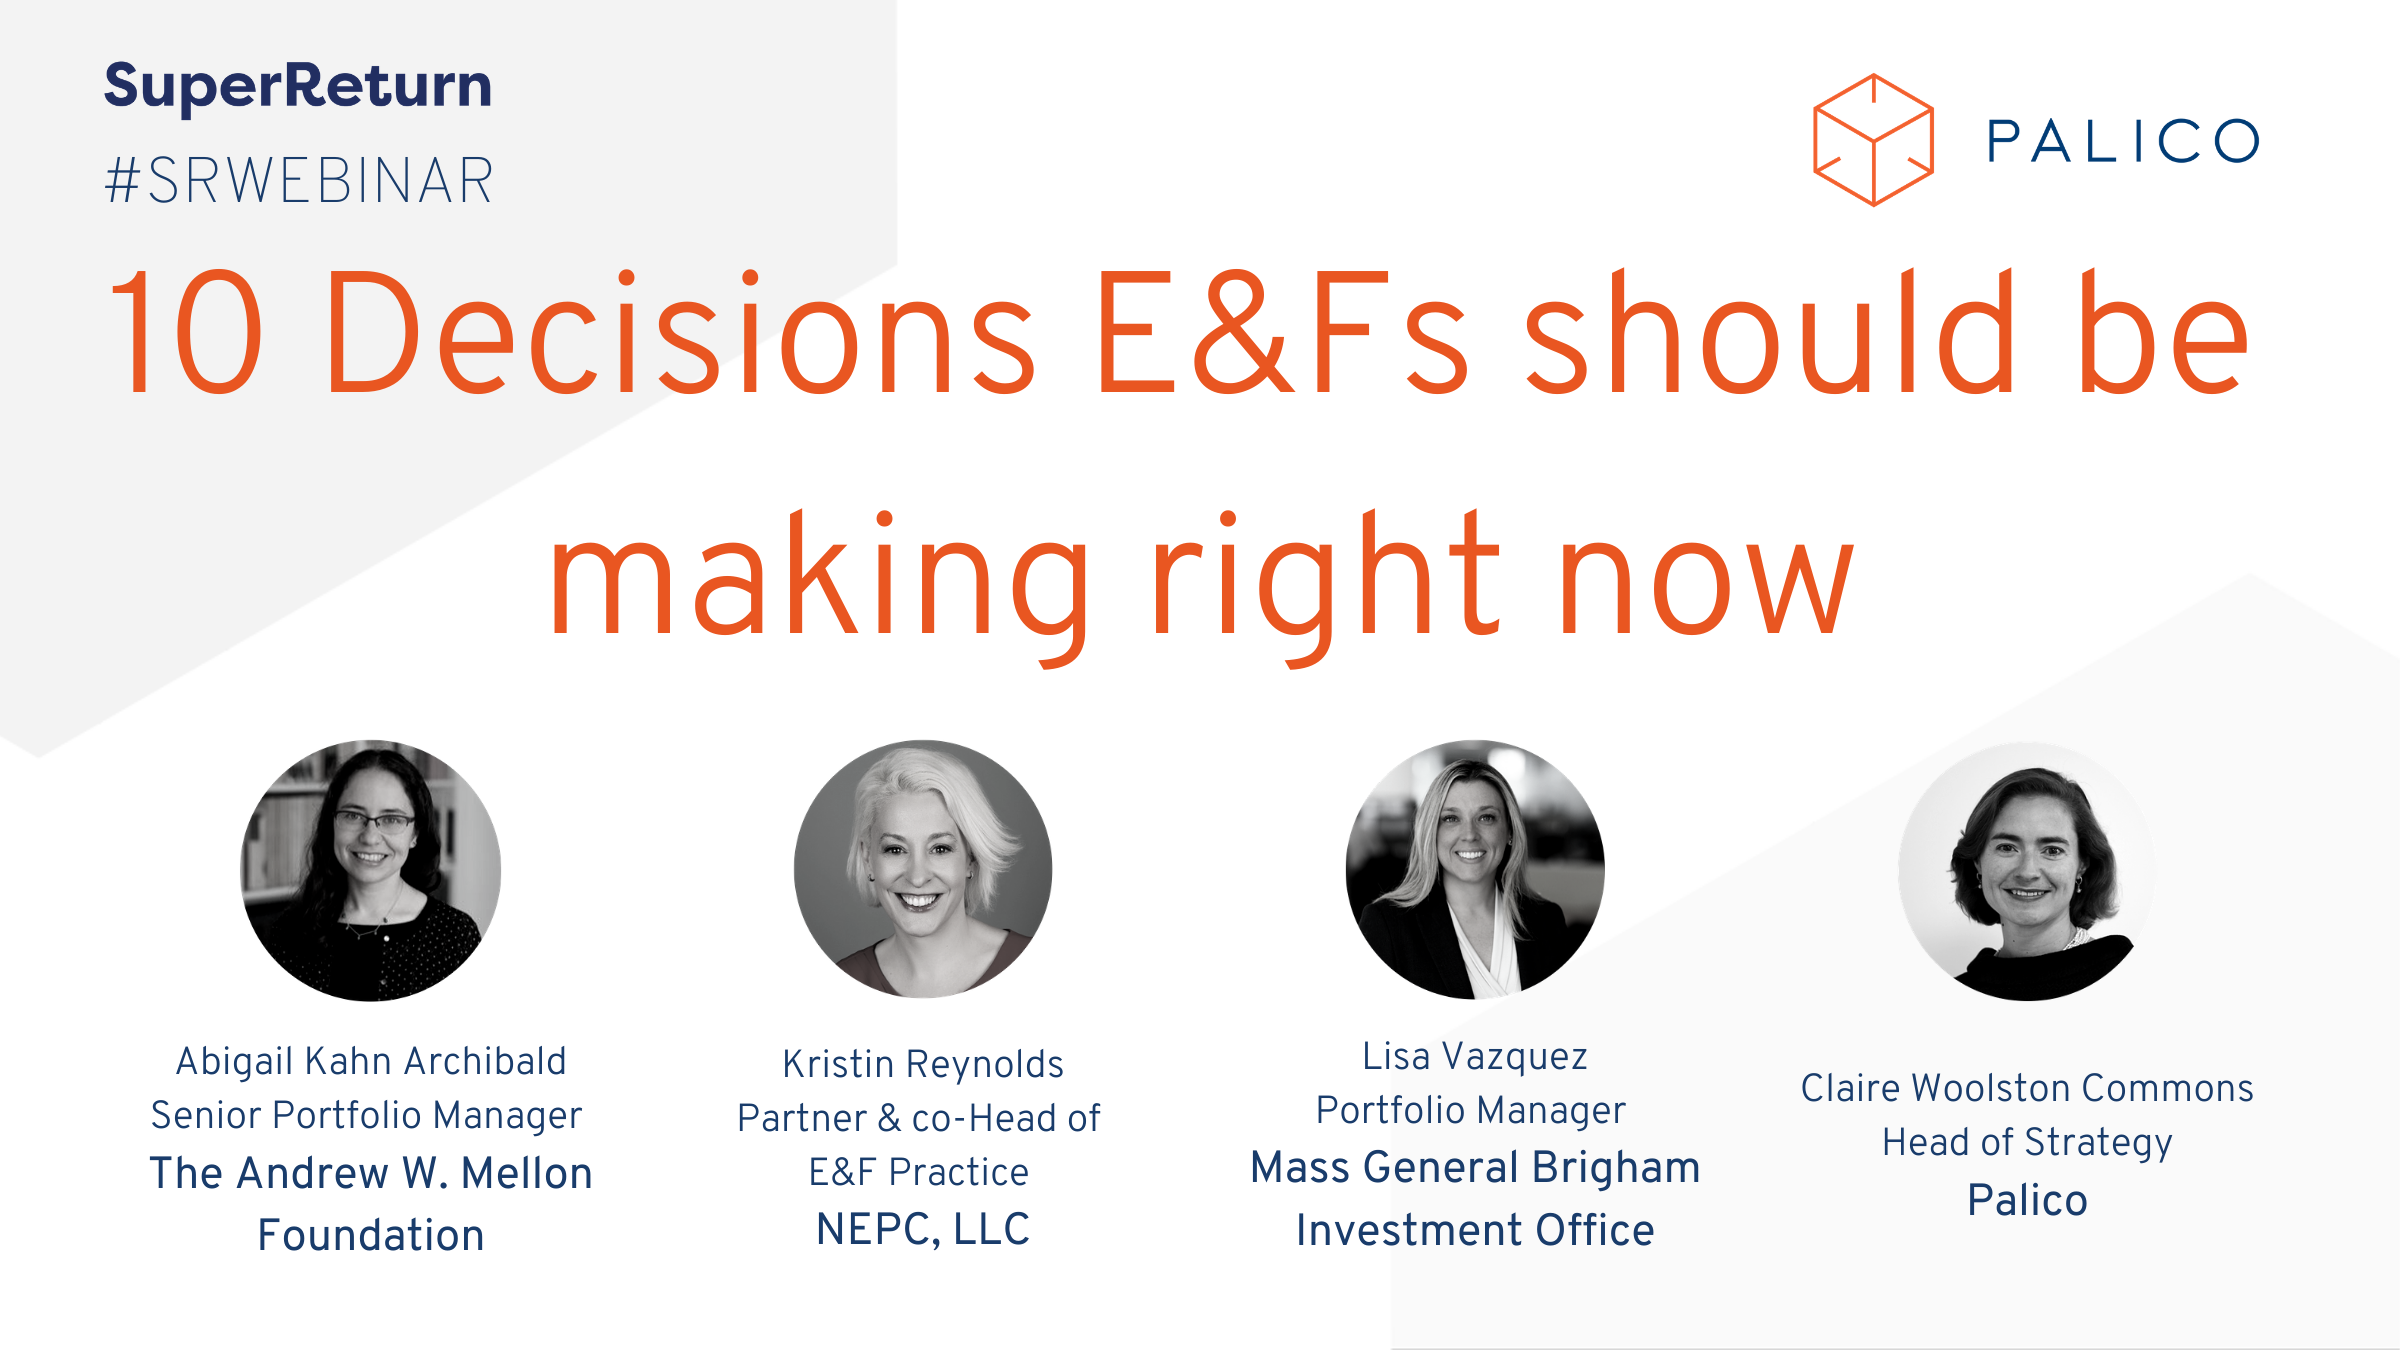 10 decisions E&Fs should be making right now